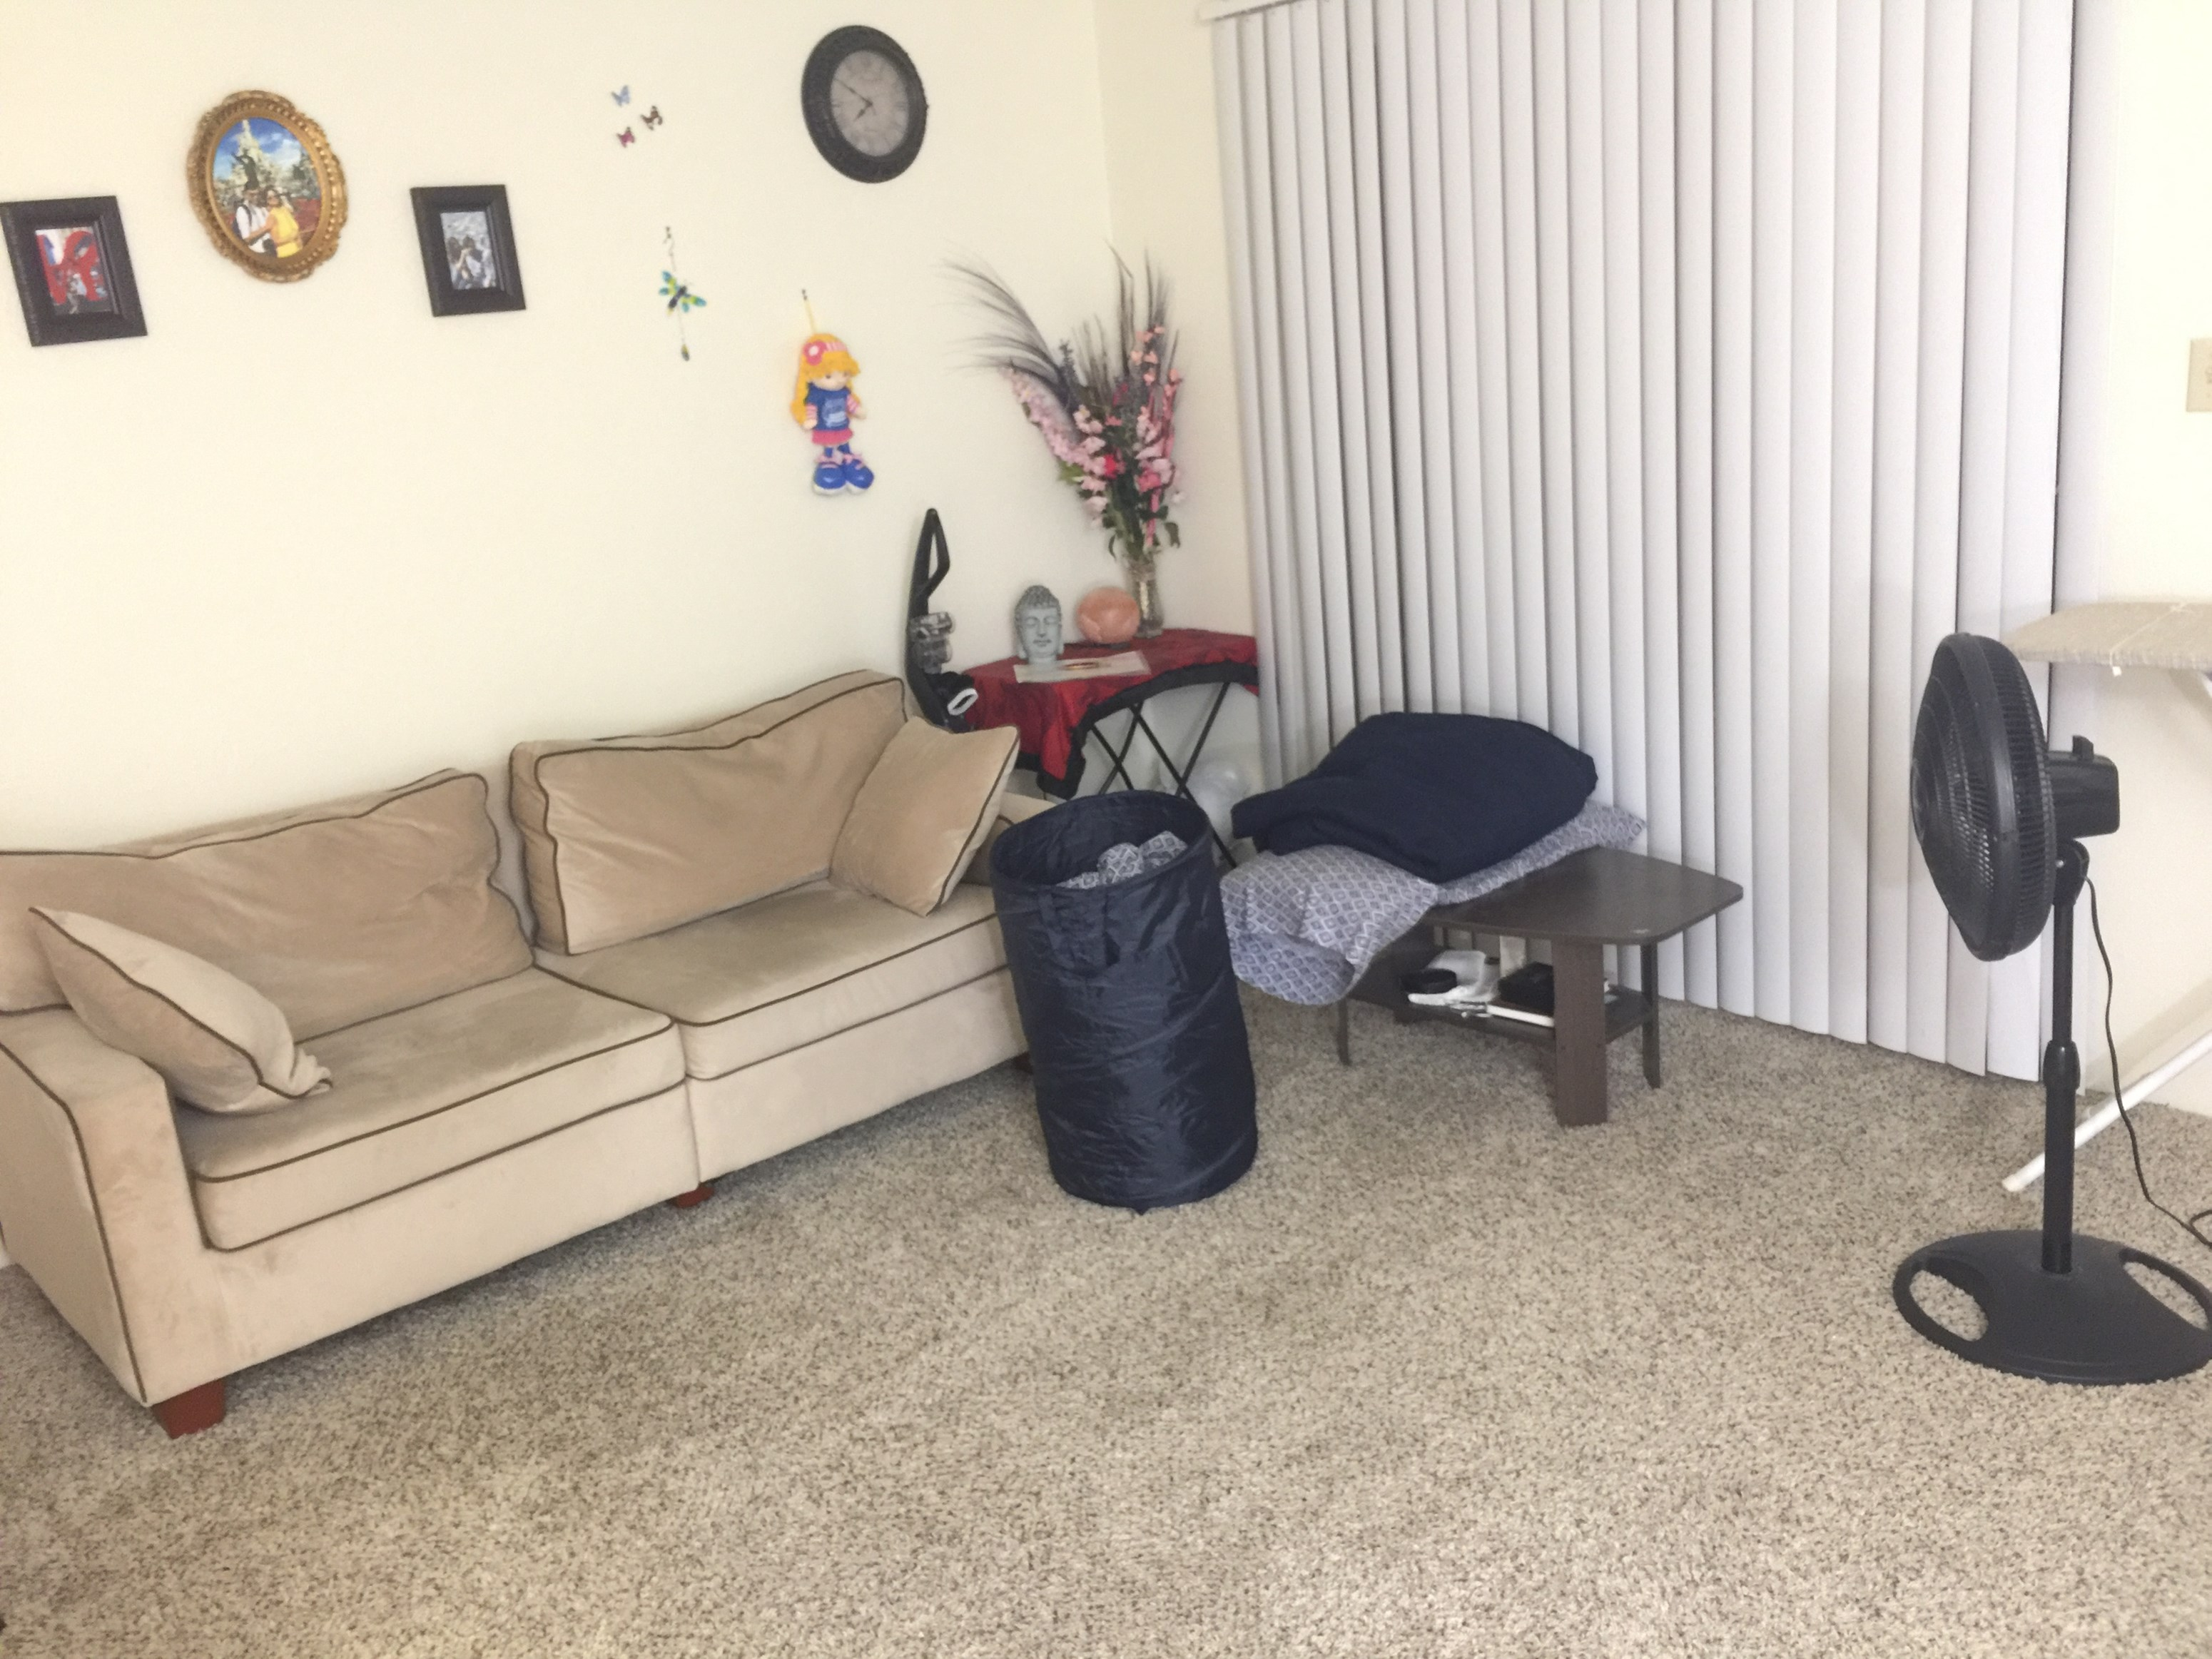 p for picture ps az s rent trulia ave room uh ash tempe